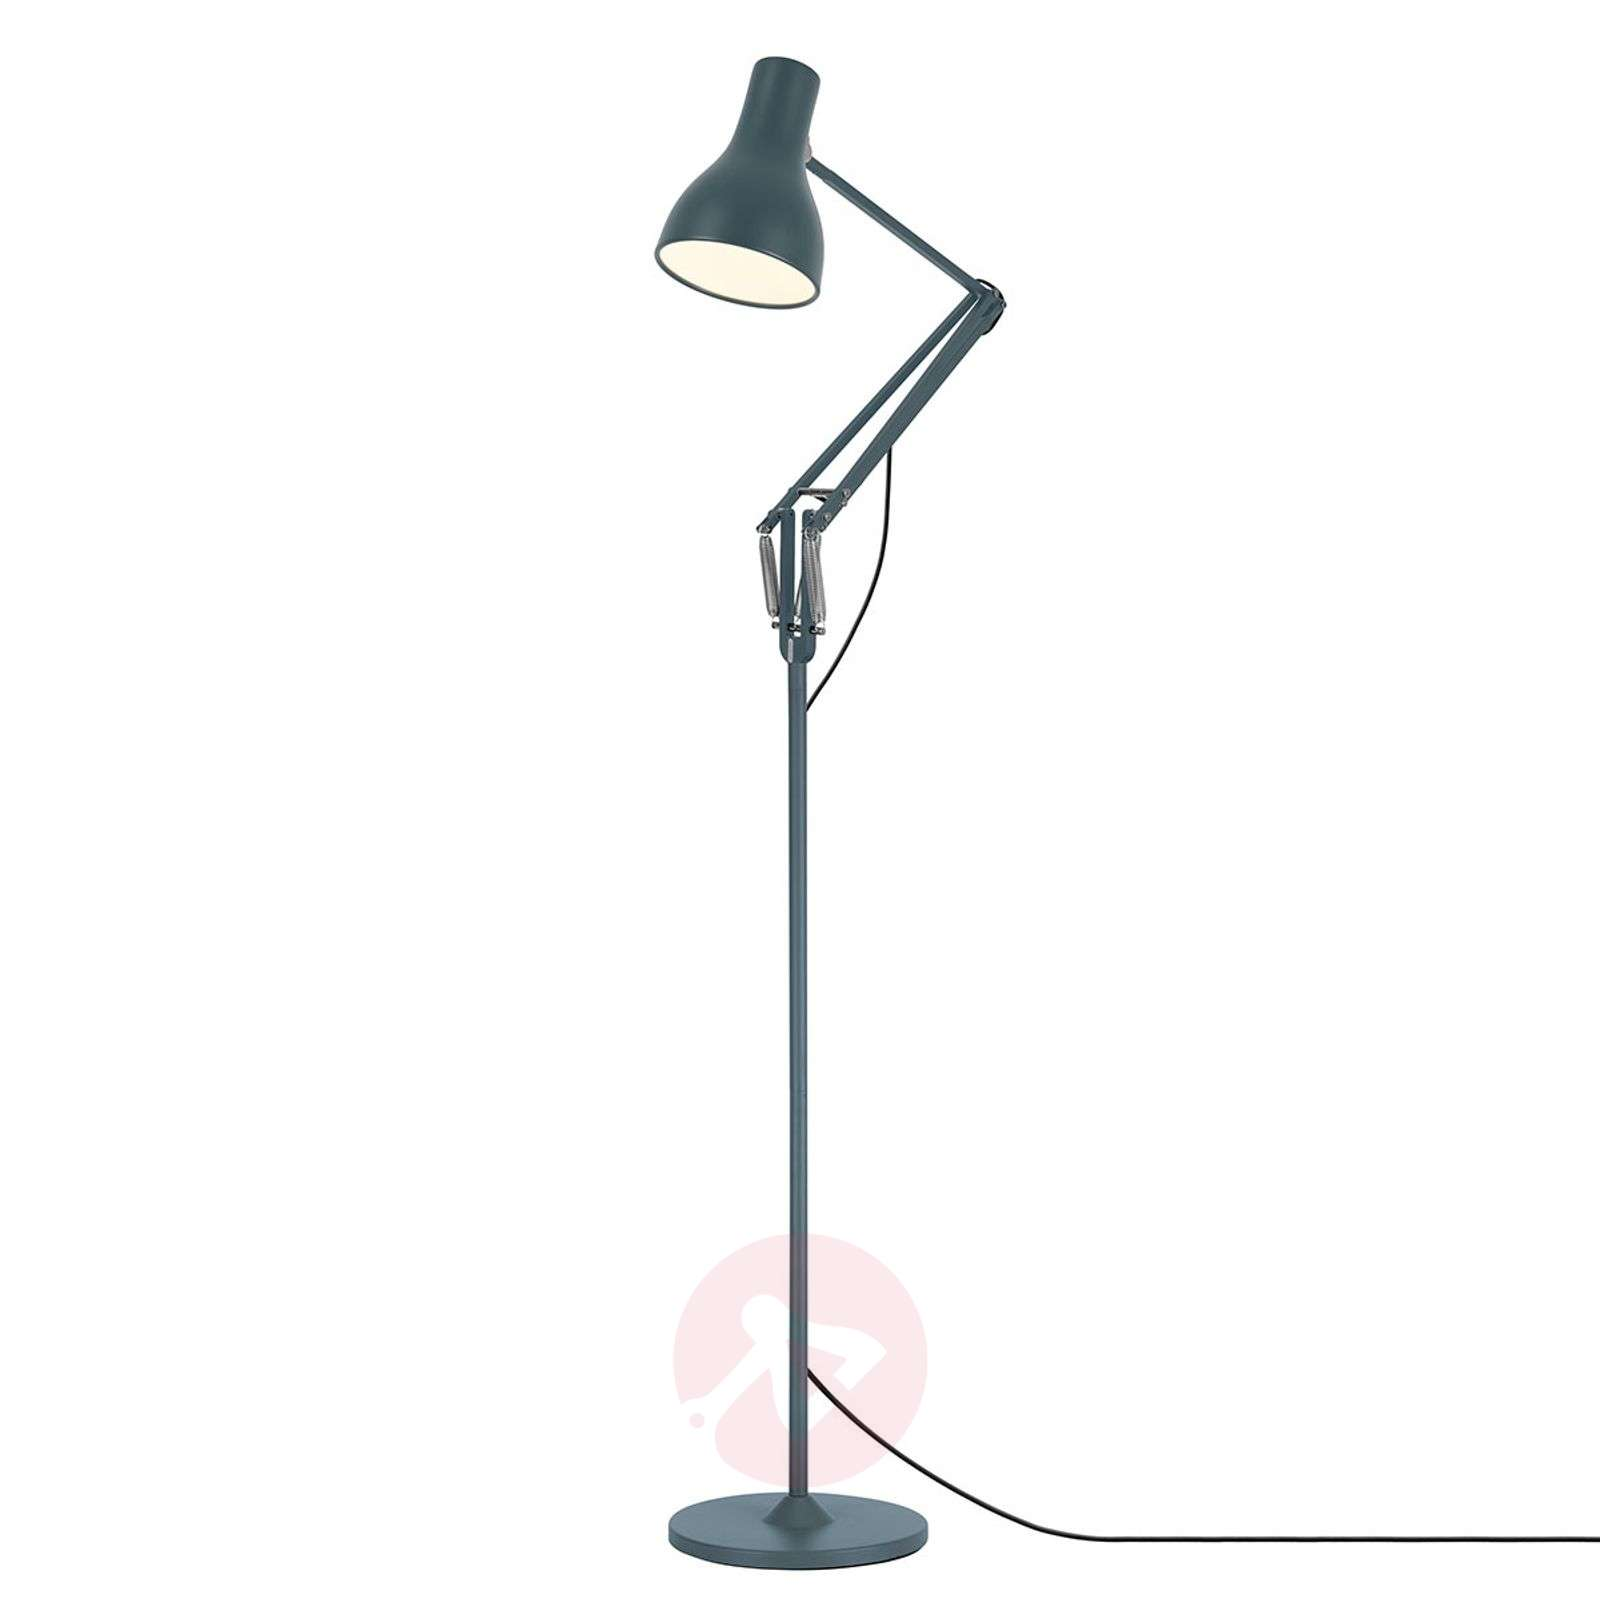 Anglepoise Type 75 vloerlamp-1073073X-01